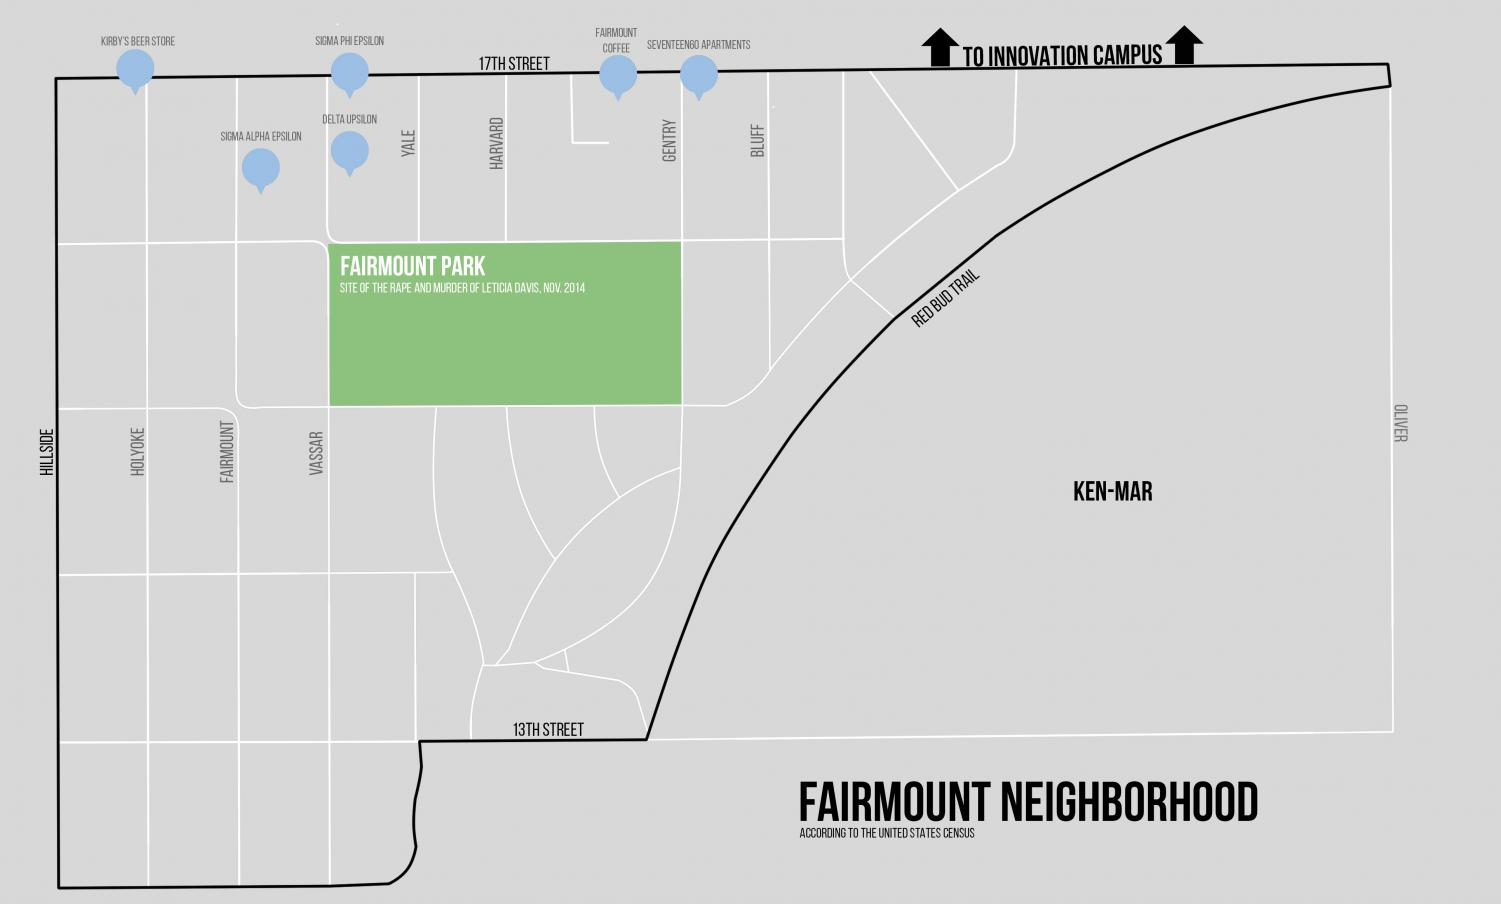 The United States Census defines Fairmount in their data as the area starting at 17th and Hillside, just south of campus, and stretches south to a block after 13th Street at Hillside. It then stretches east and divides Fairmount and Ken-Mar at the Red Bud Trail, which used to be a rail line. The Sunflower will be using these boundaries when they refer to Fairmount.